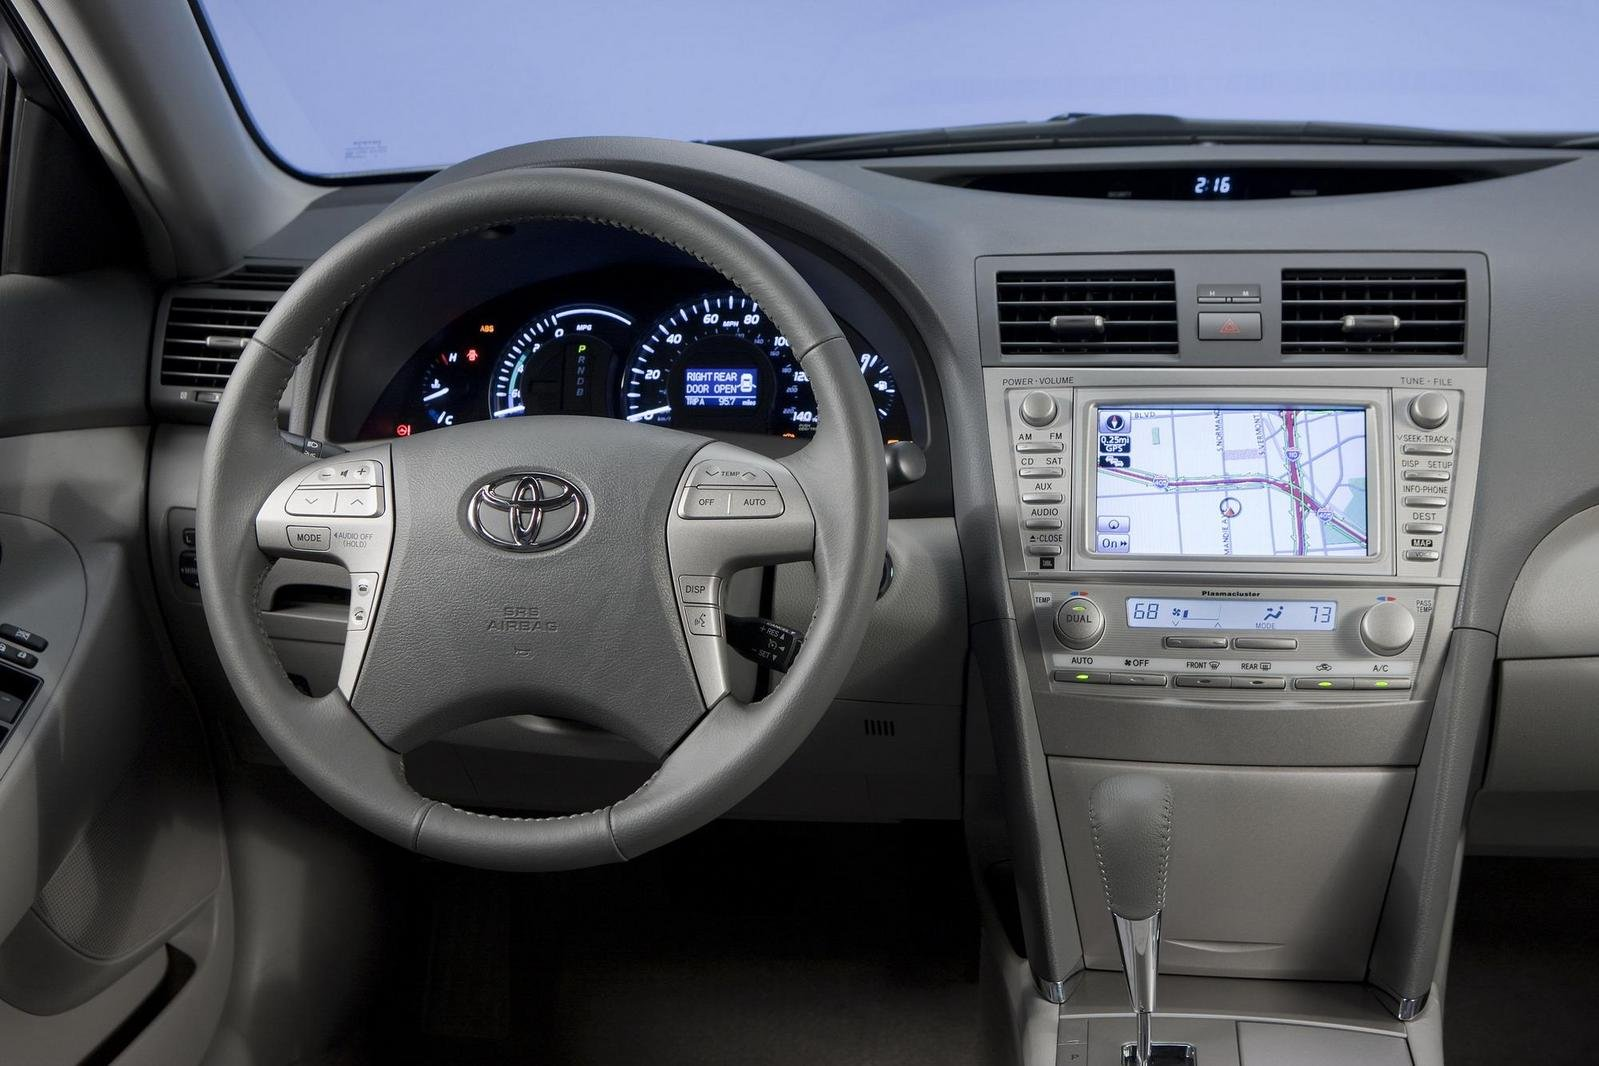 2010 Toyota Camry Se 2010 Toyota Camry Car Review Top Speed